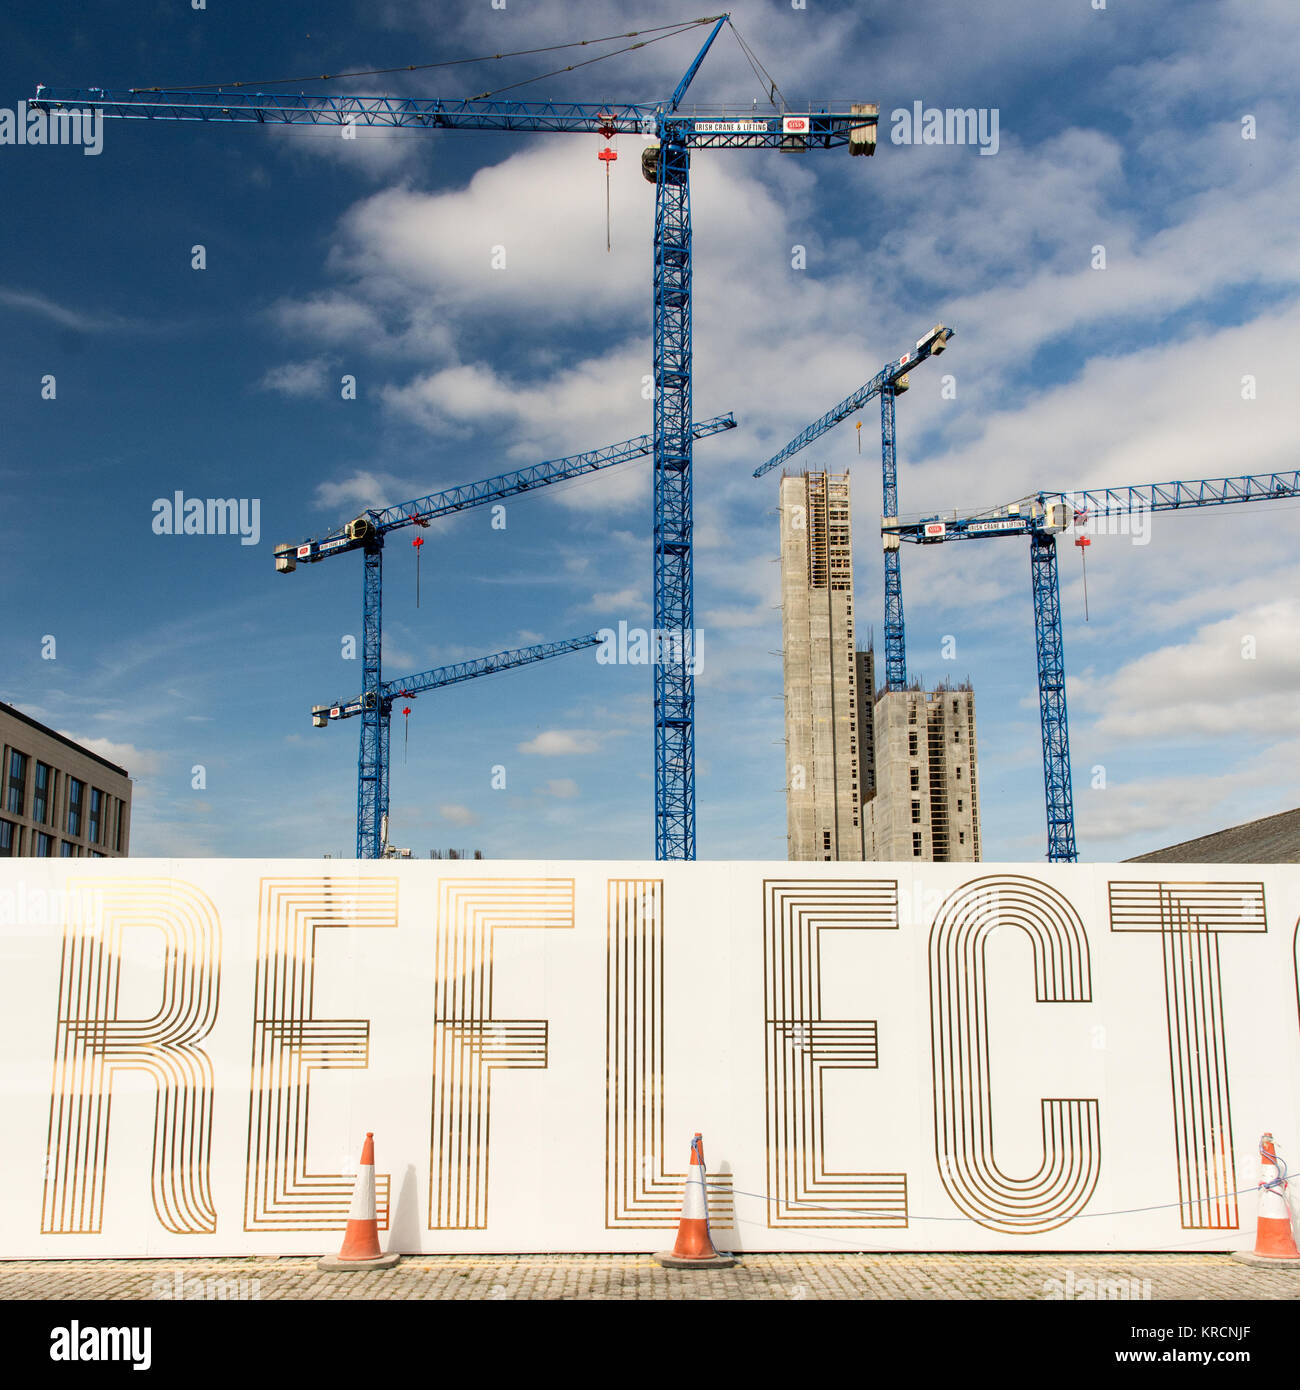 Dublin, Ireland - September 17, 2016: An array of tower cranes at a construction site in Dublin's regenerating - Stock Image